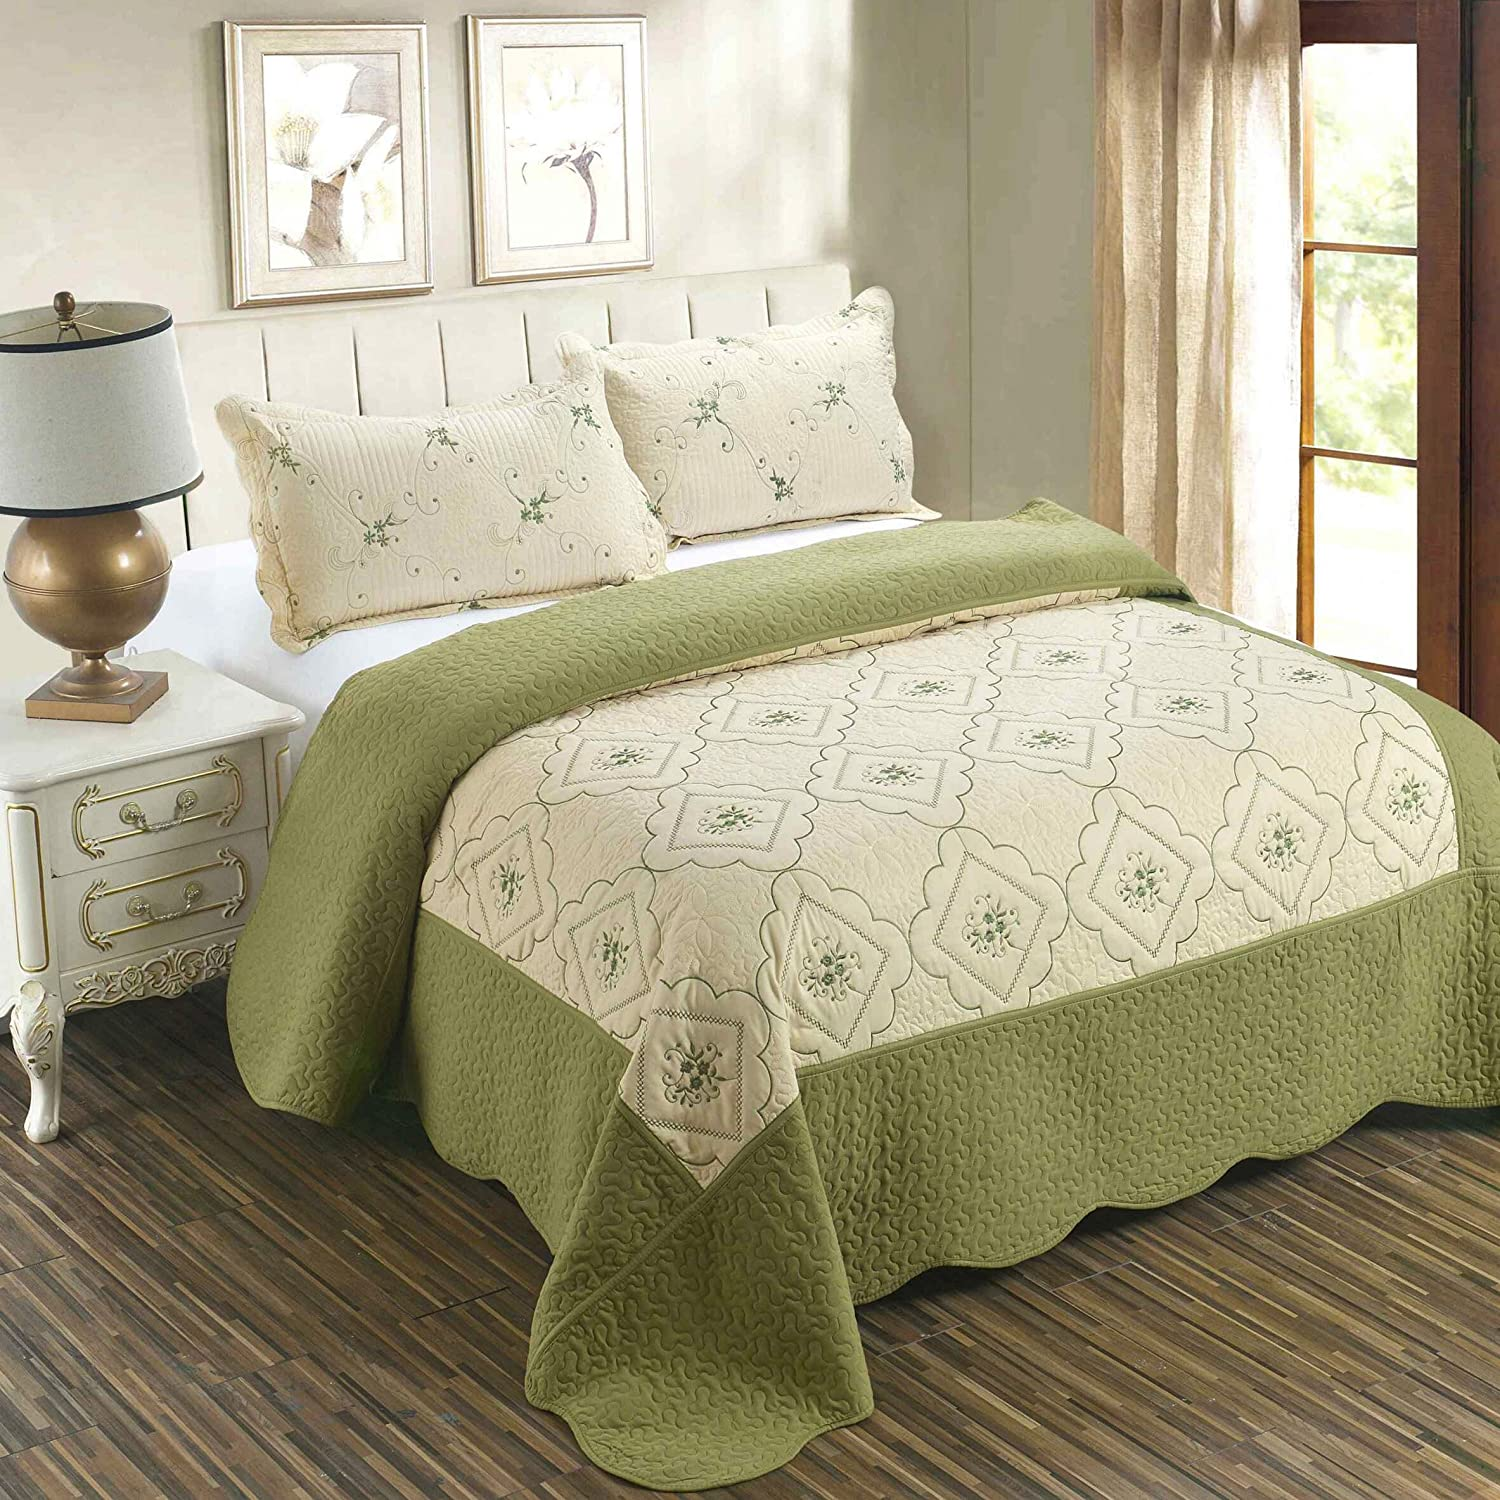 "3-Piece Quilt Coverlet Bedding Set King(90""x102"") Size Bedspread Floral Pattern Exquisite Embroidery Lightweight Hypoallergenic by Jessy Home, Olive"